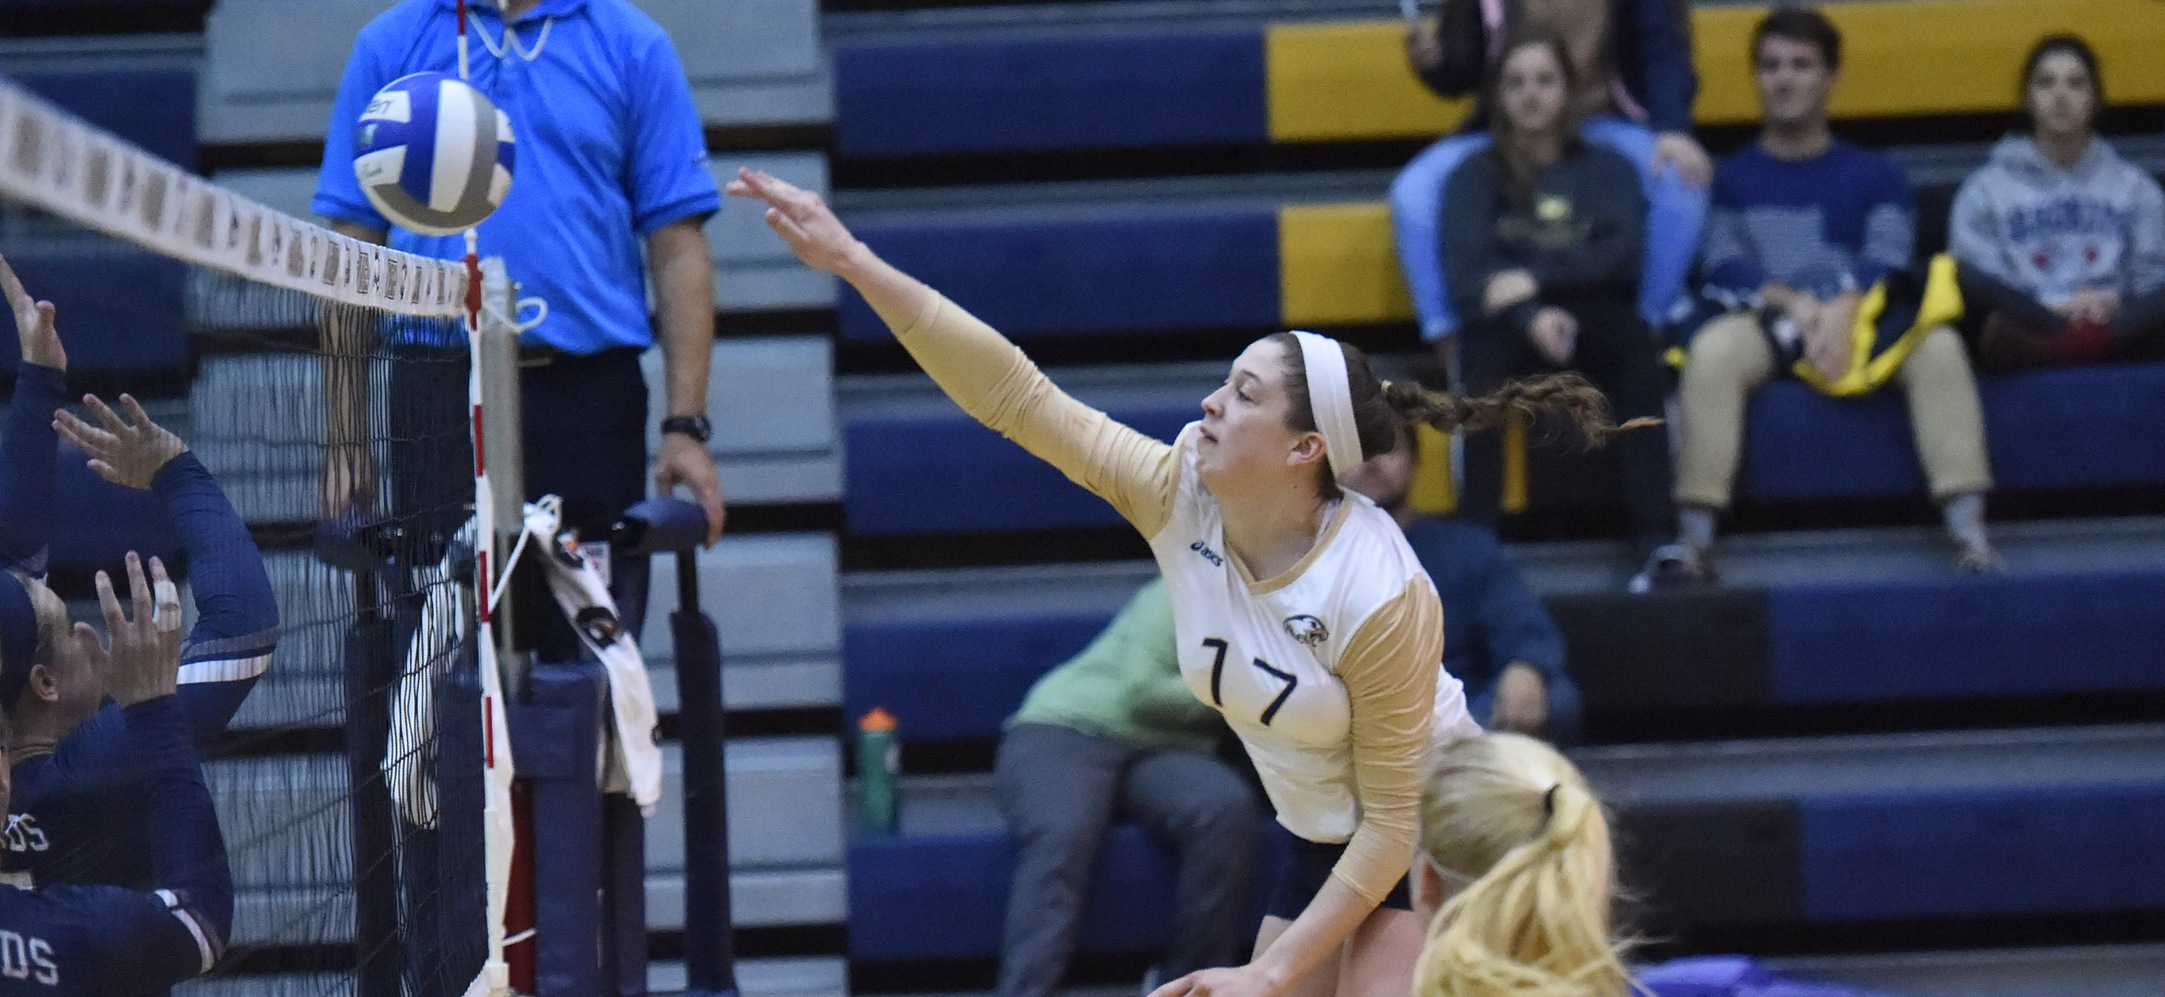 Eagles Soar Past Greyhounds Into Landmark Championships, Moroney Gets 1000th Kill